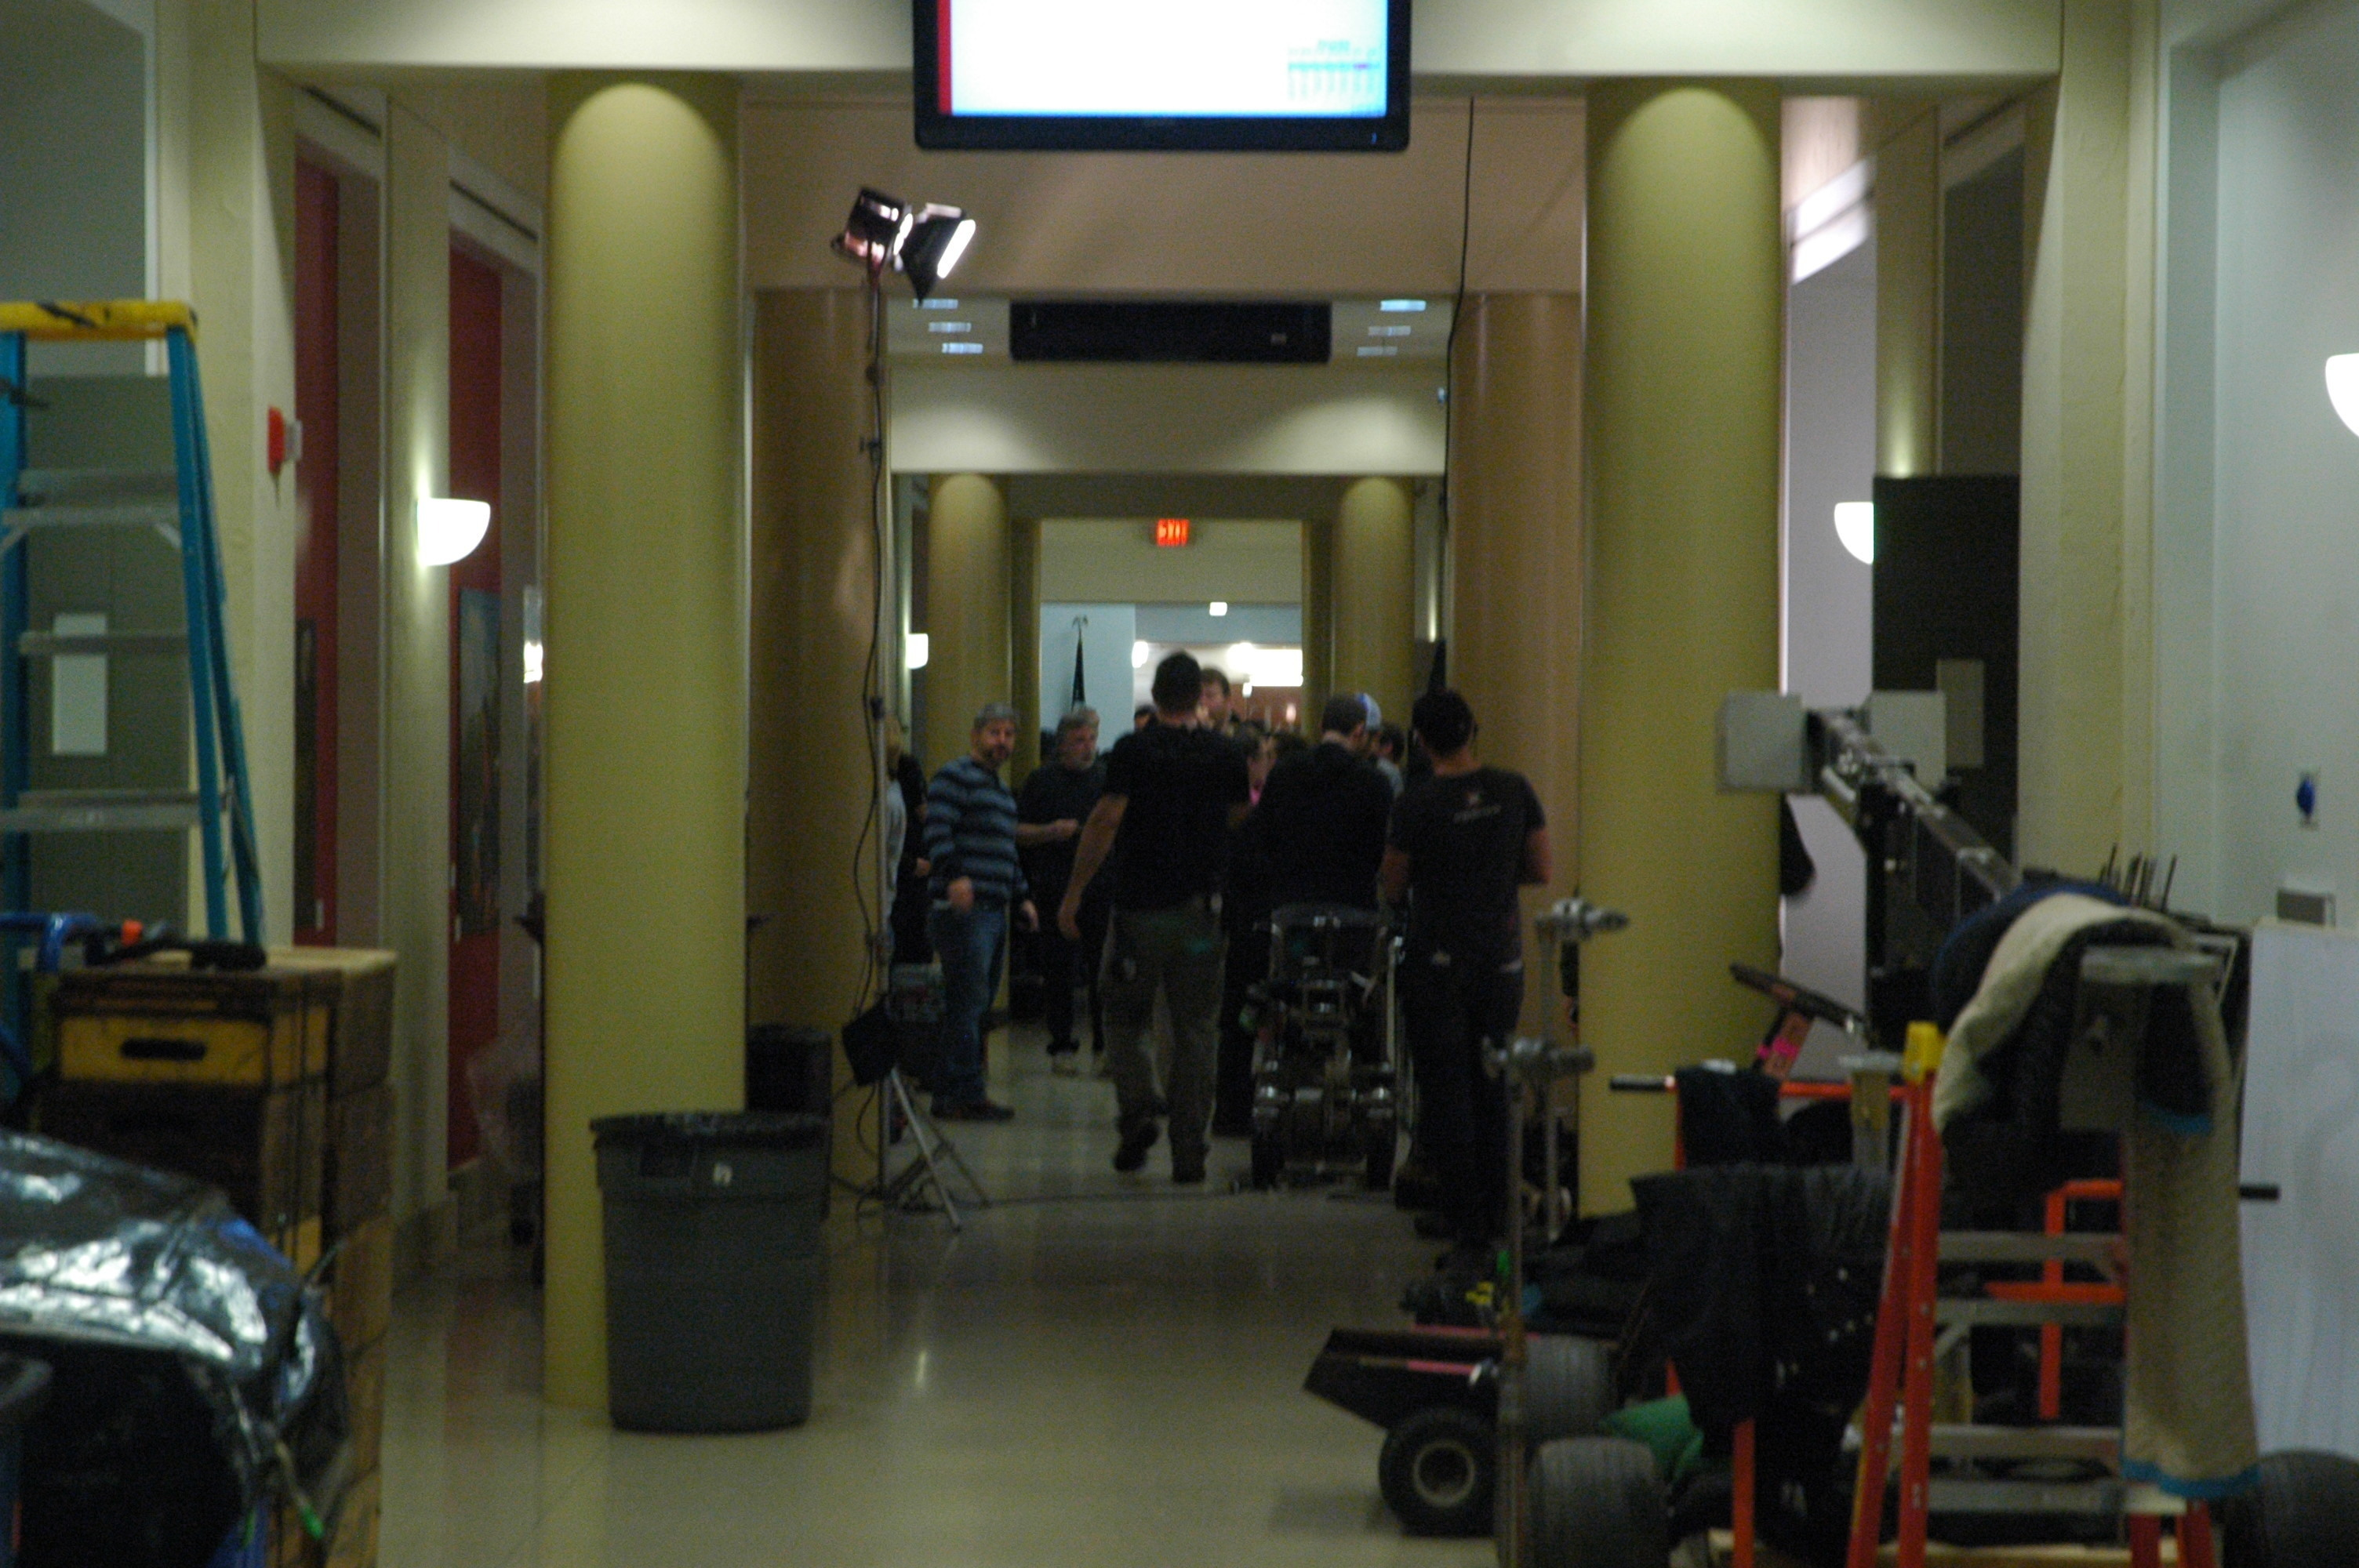 Film crews and equipment lined the halls of Posner on Friday (credit: Justin McGown/Online Editor)